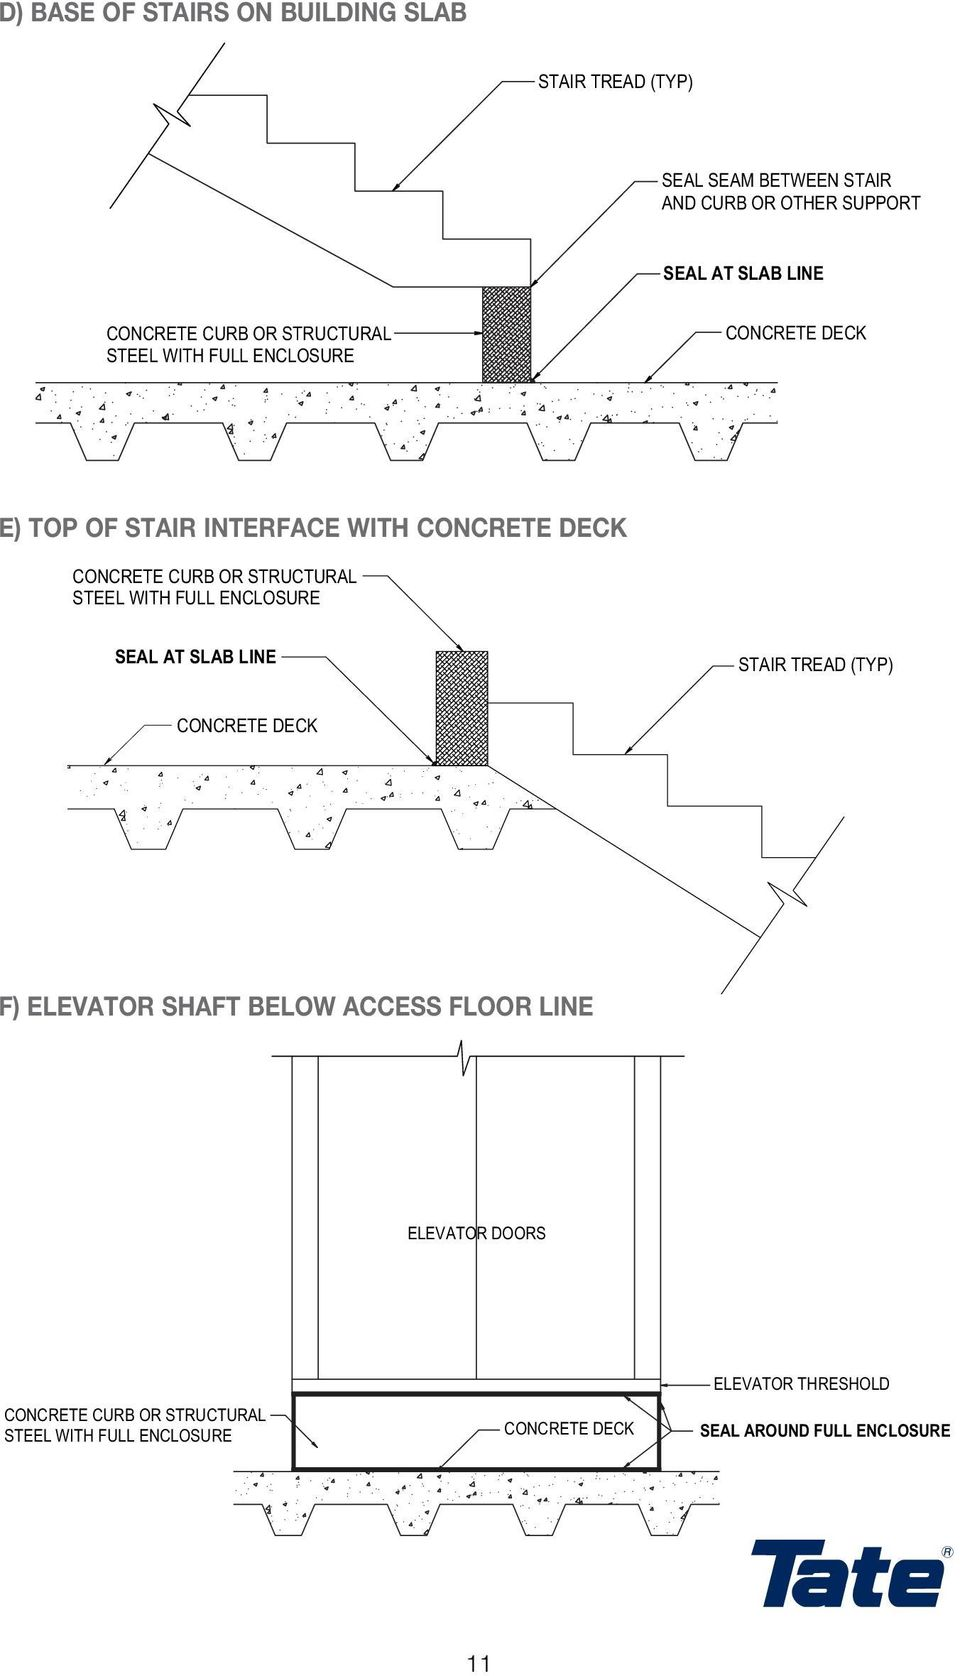 FULL ENCLOSURE SEAL AT SLAB LINE STAIR TREAD (TYP) F) ELEVATOR SHAFT TOP OF BELOW STAIR INTERFACE ACCESS WITH CONCRETE FLOOR